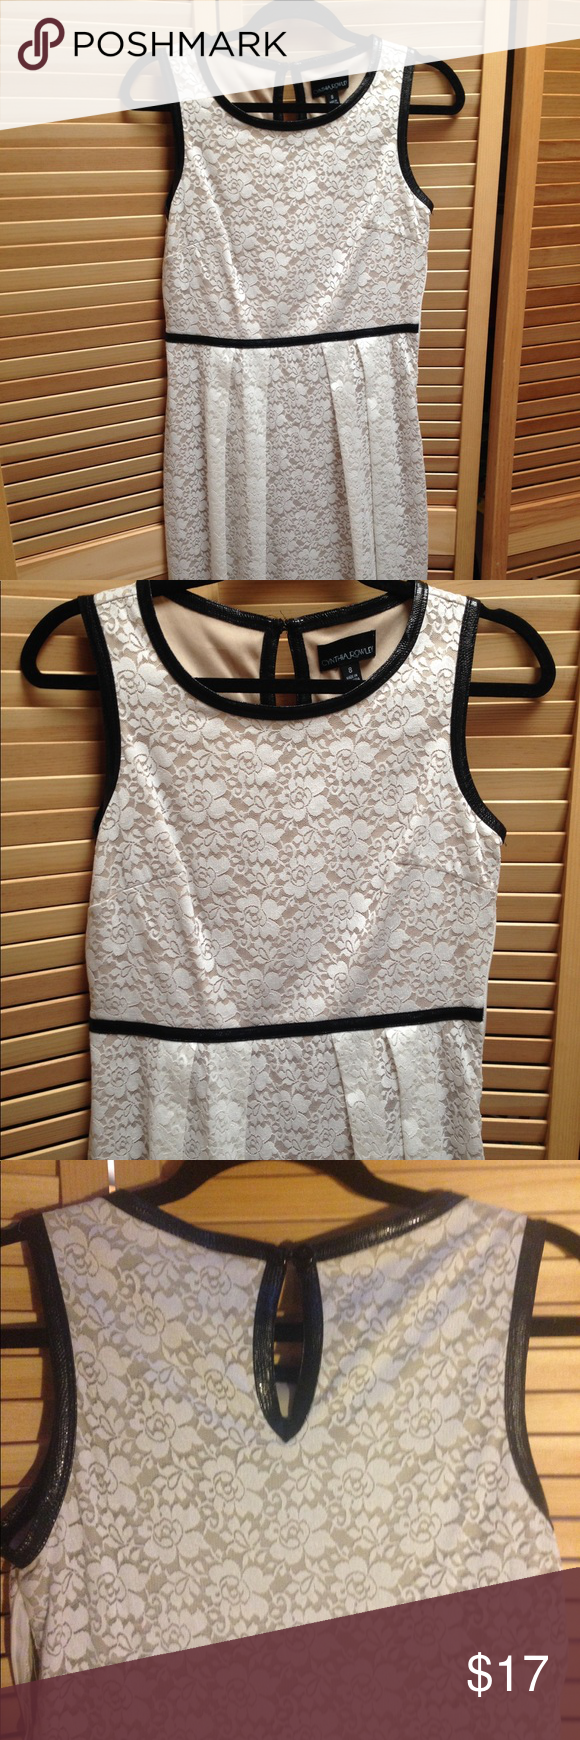 Lace below knee dress  Lace dress Really cute white lace dress with a touch of black